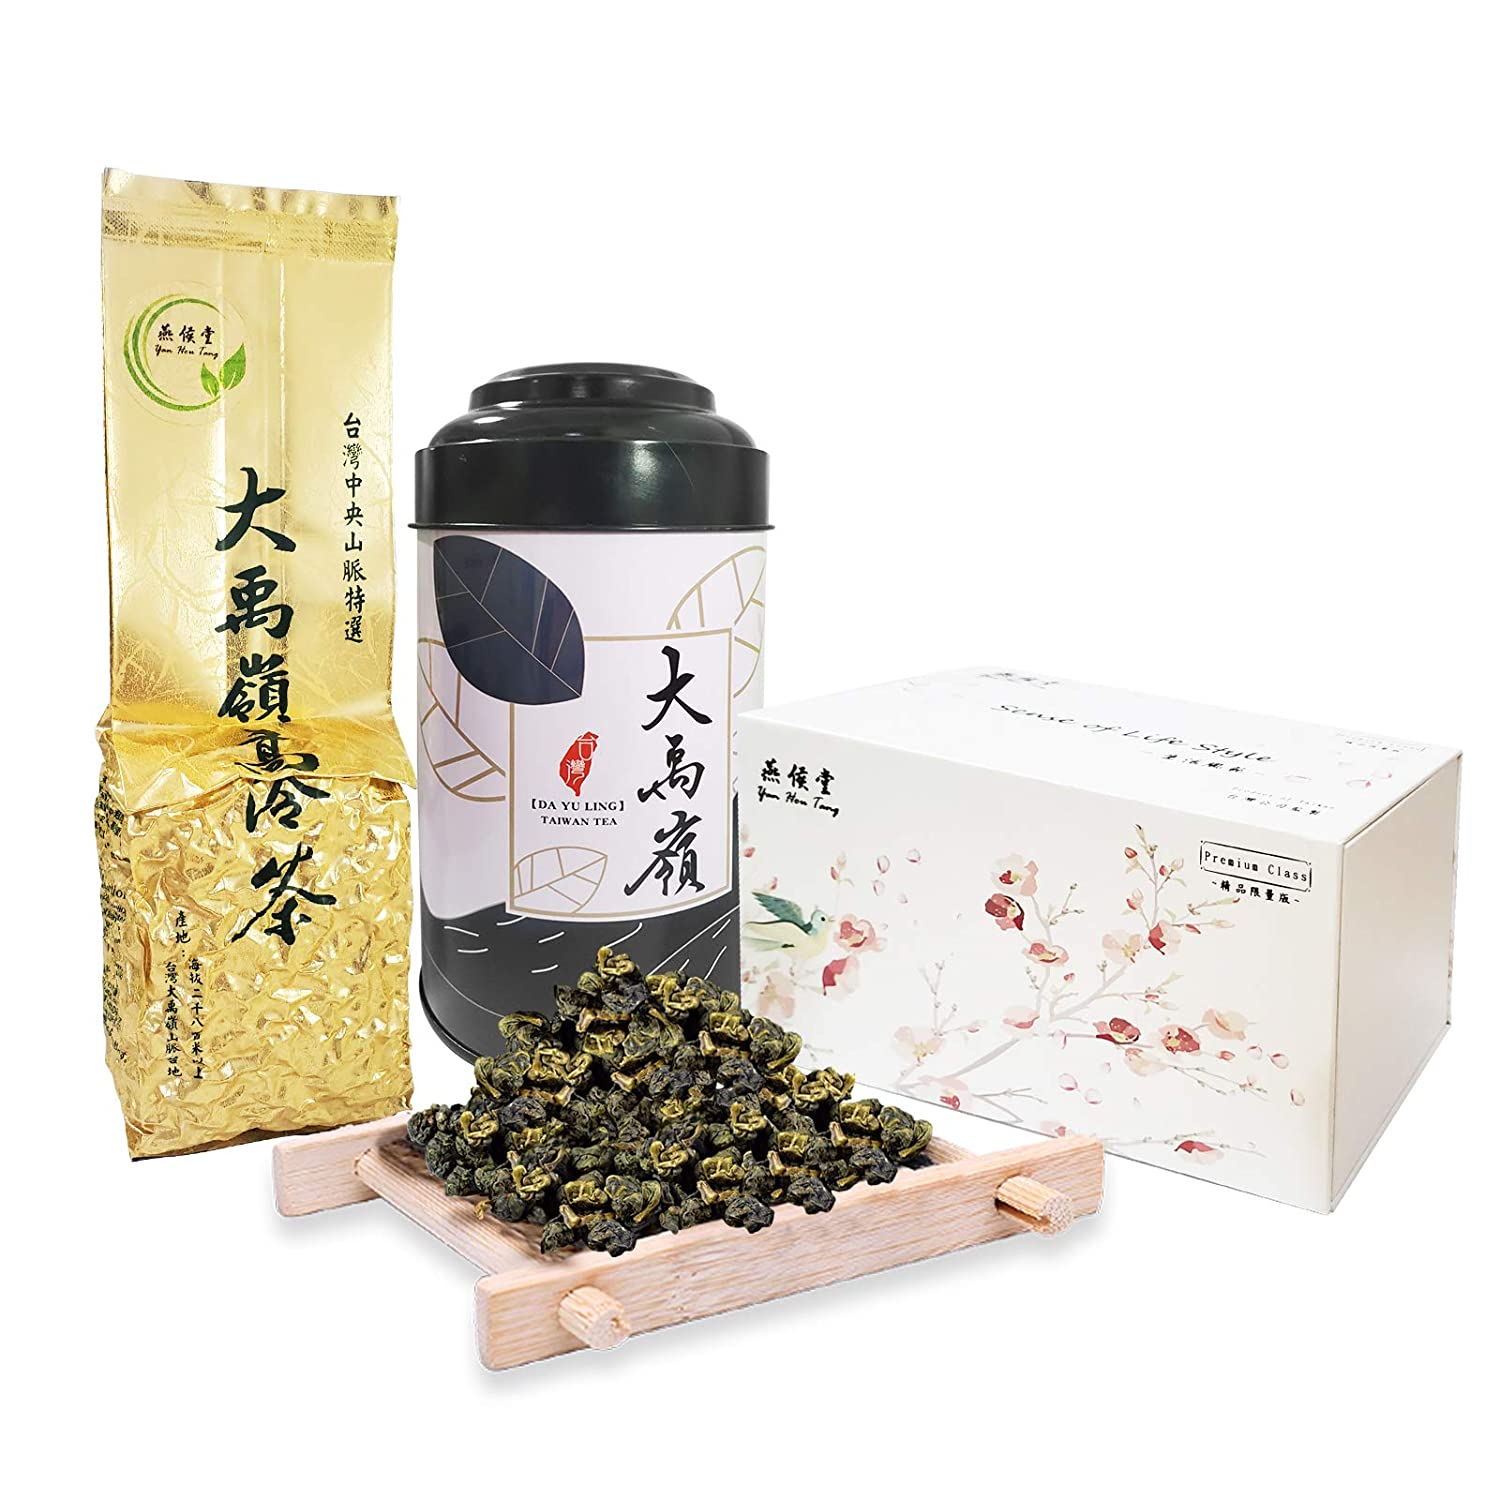 Yan Hou Tang Exclusive Organic Taiwan Da Yu Ling Oolong Tea King Imperial Royal Top Grade Premium Green Jade Full Loose Leaf - 150g Exquisite Souvenir Gift Box Jar Mountain Forest Taste Chinese Tea